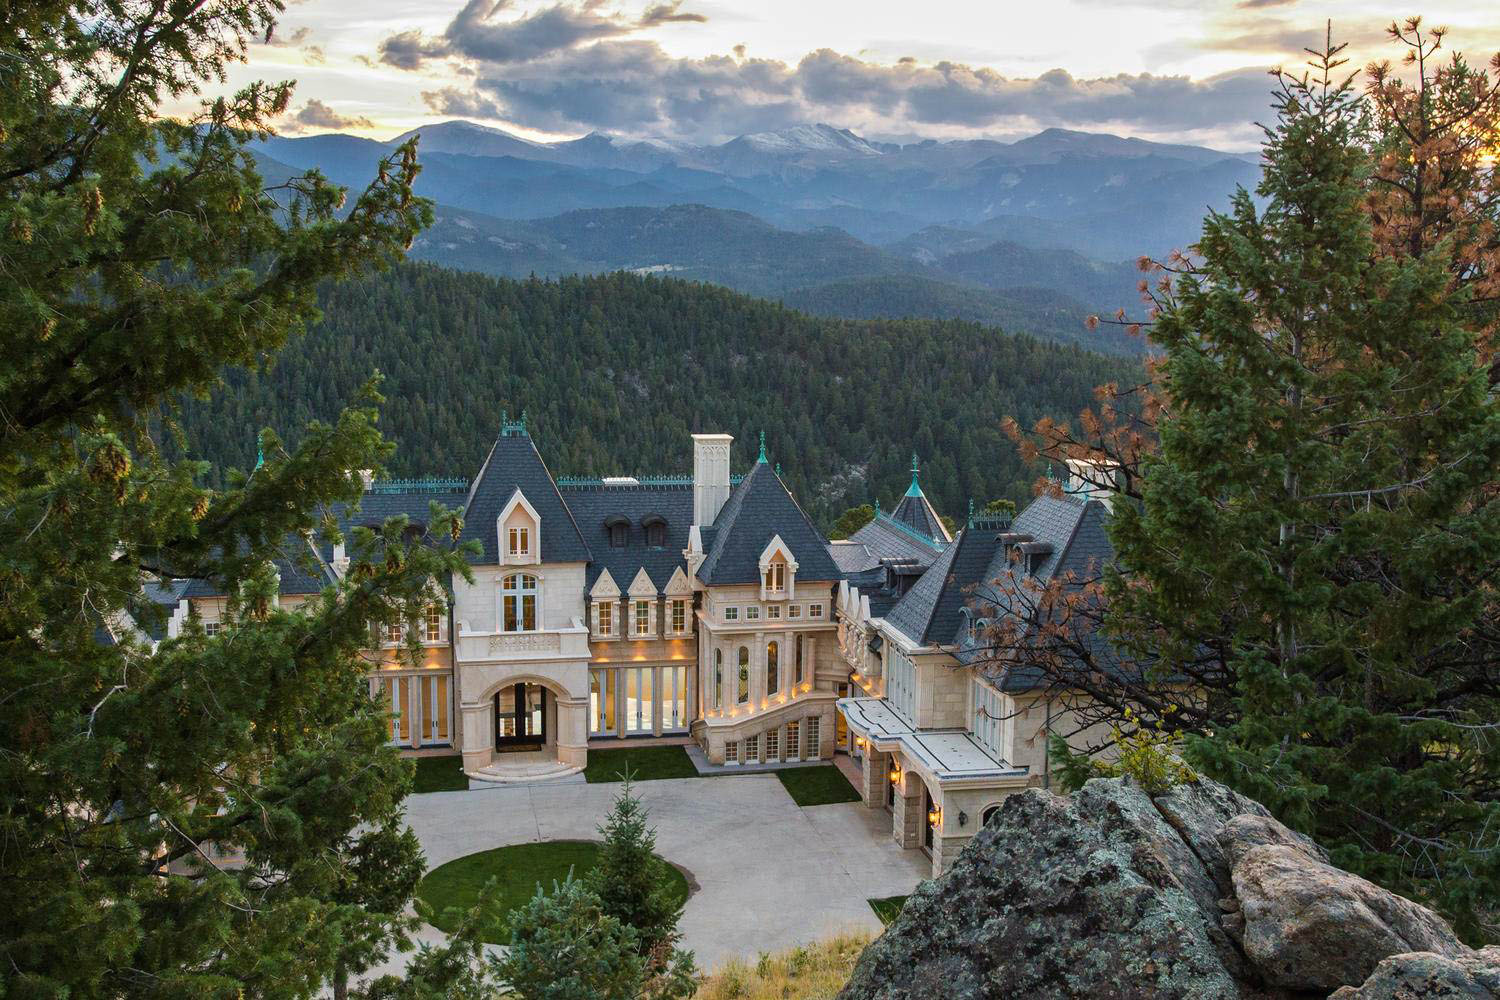 Grand Chateau Residence In The Colorado Rocky Mountains on Colorado Mountain Mansions